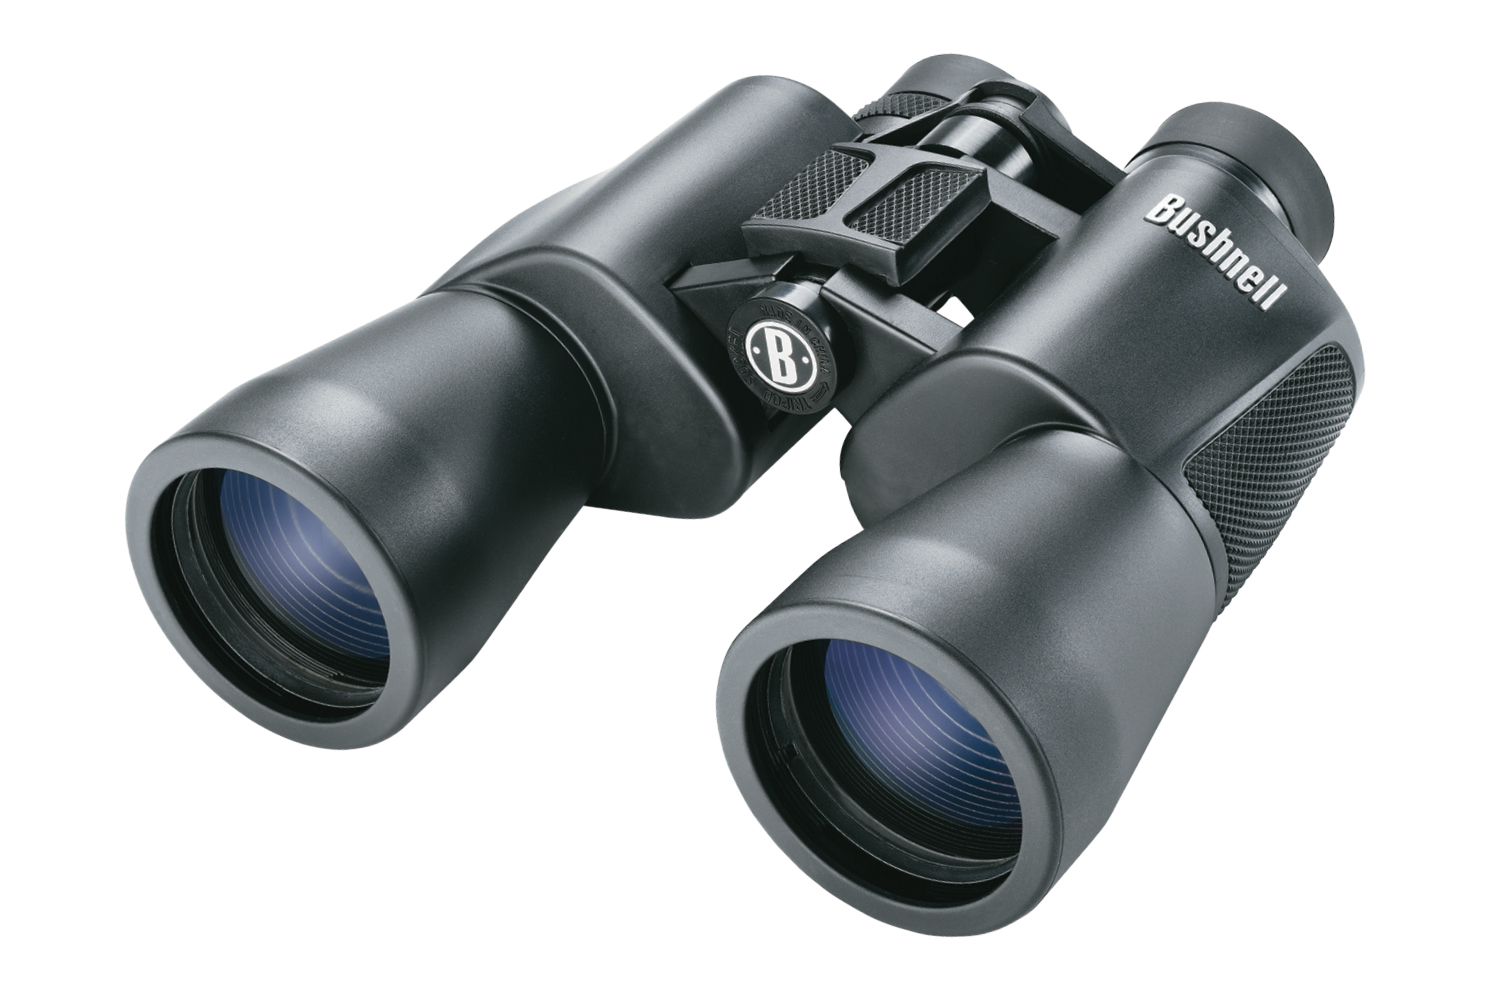 Бинокль Bushnell PowerView PORRO 12x50 бинокль sturman 12x50